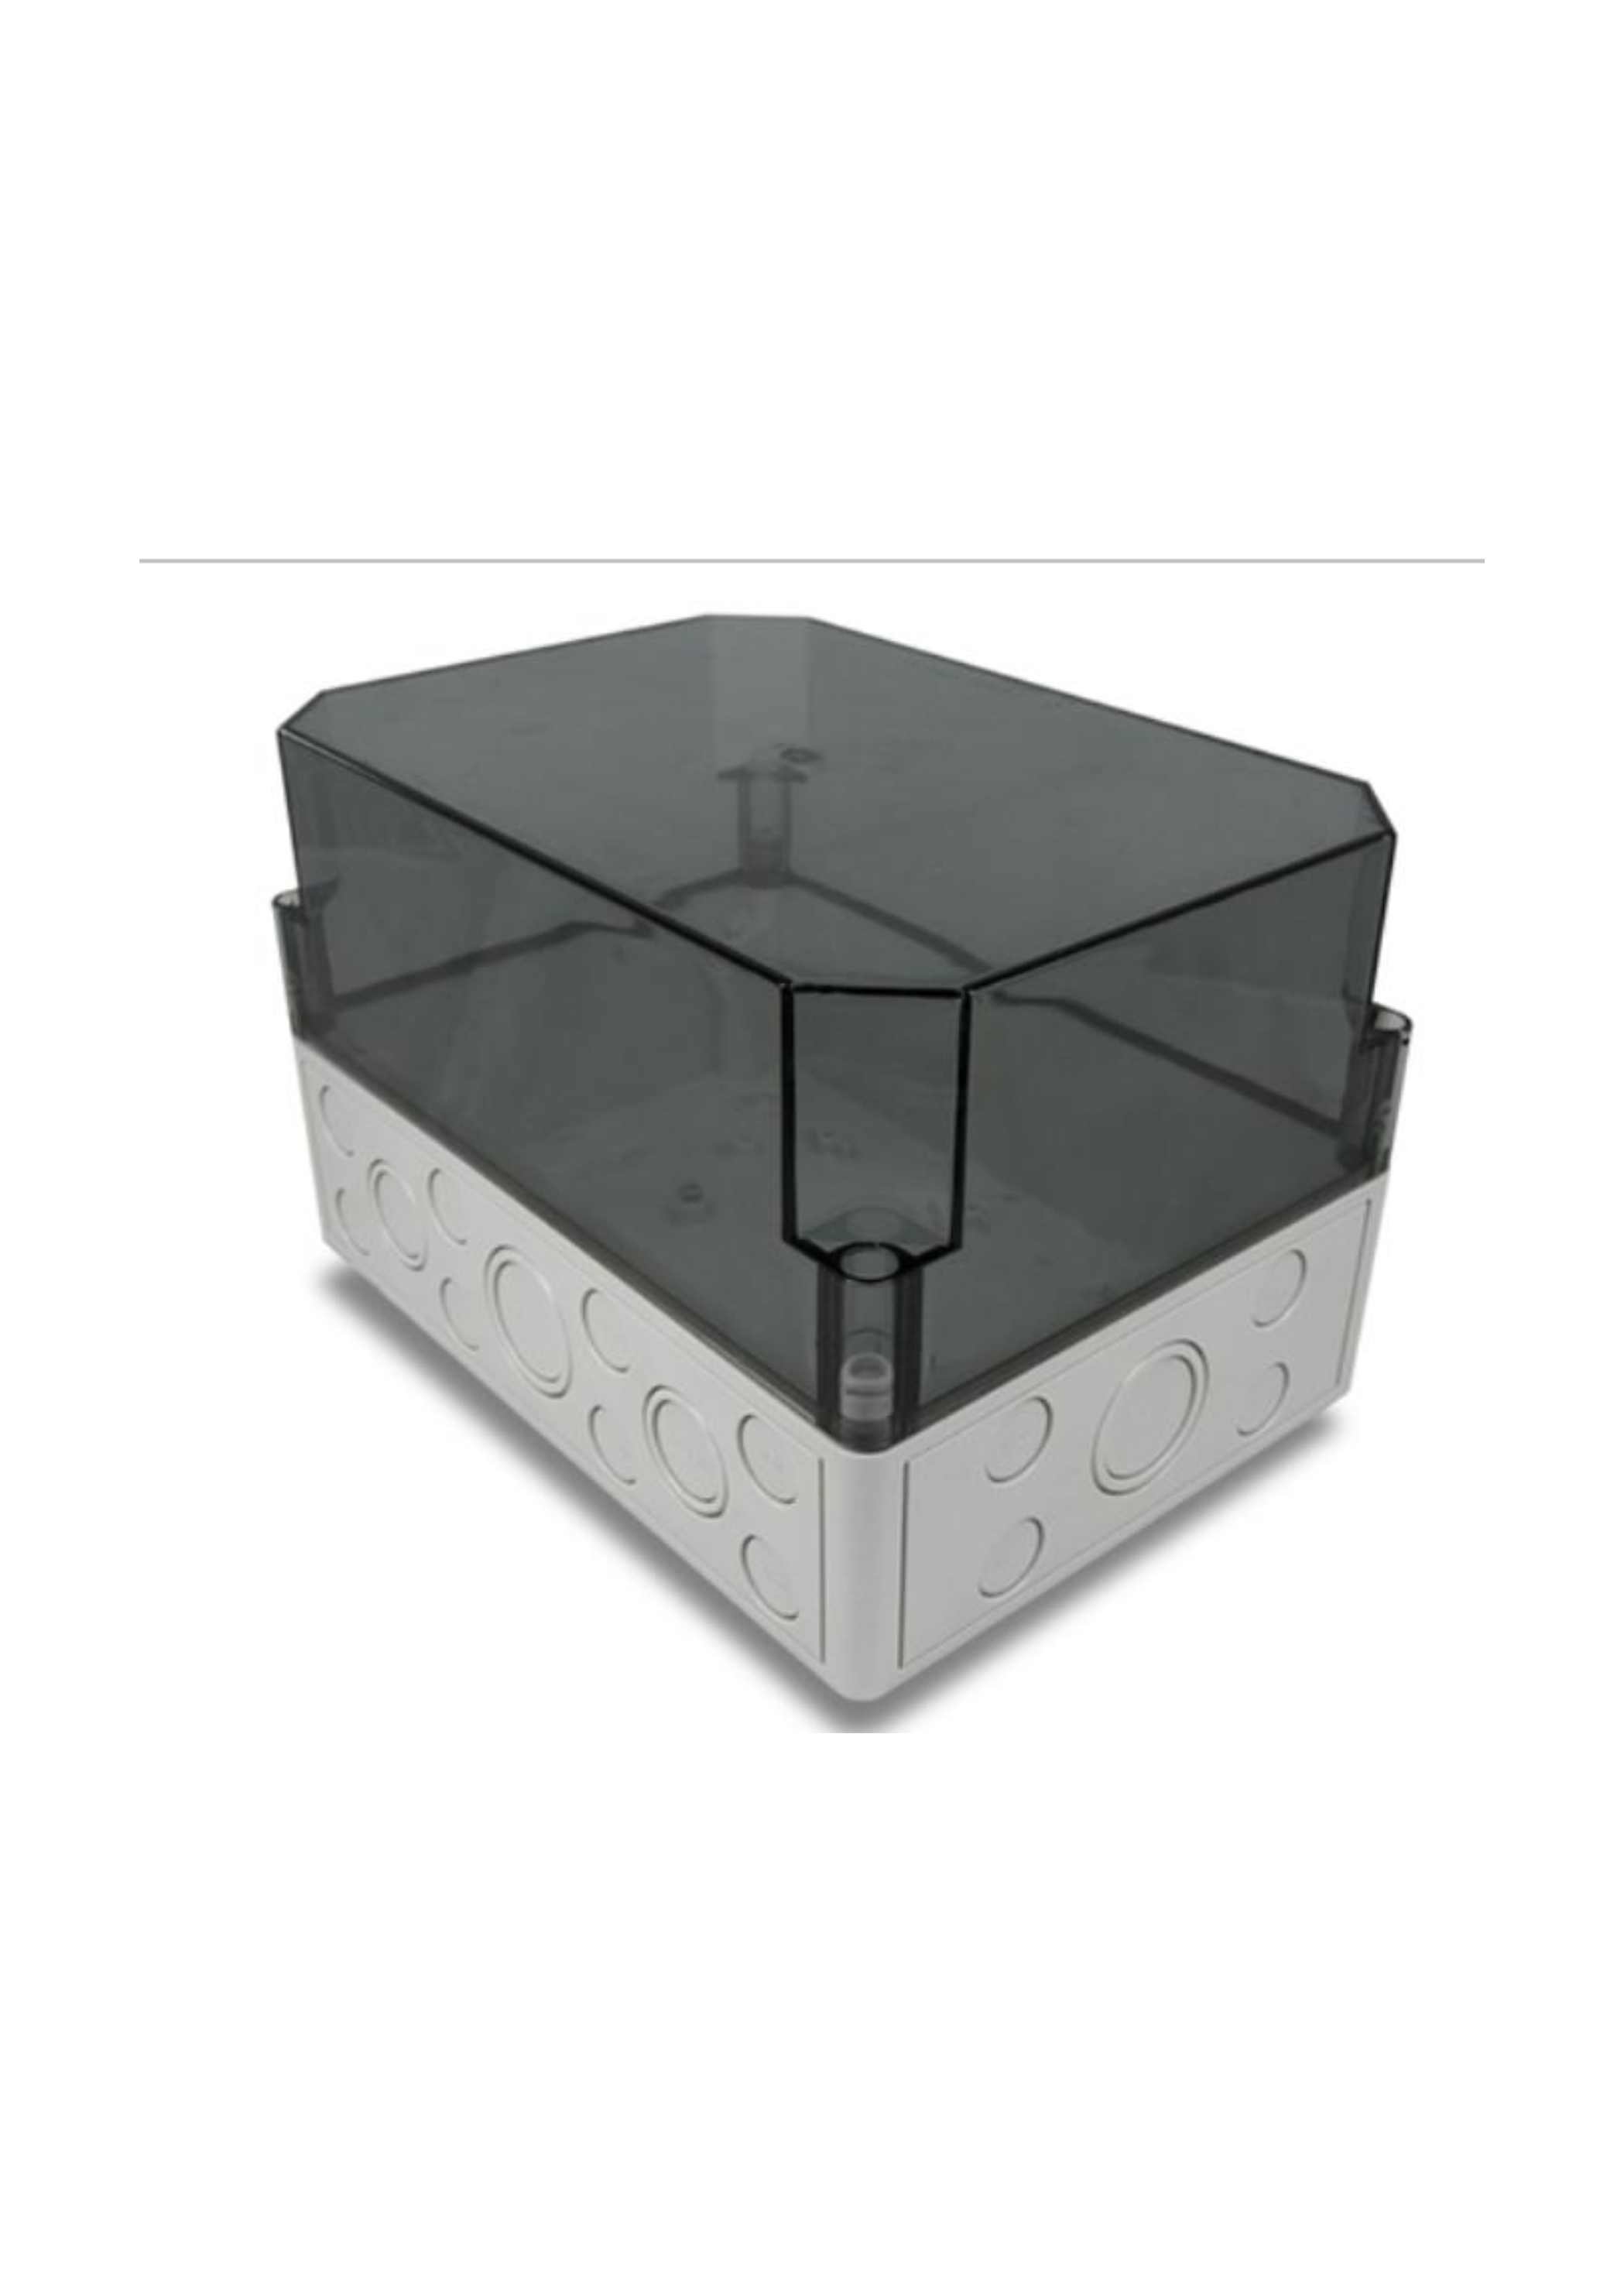 DIN Mounting Box - Small (up to 4 DIN rail modules...